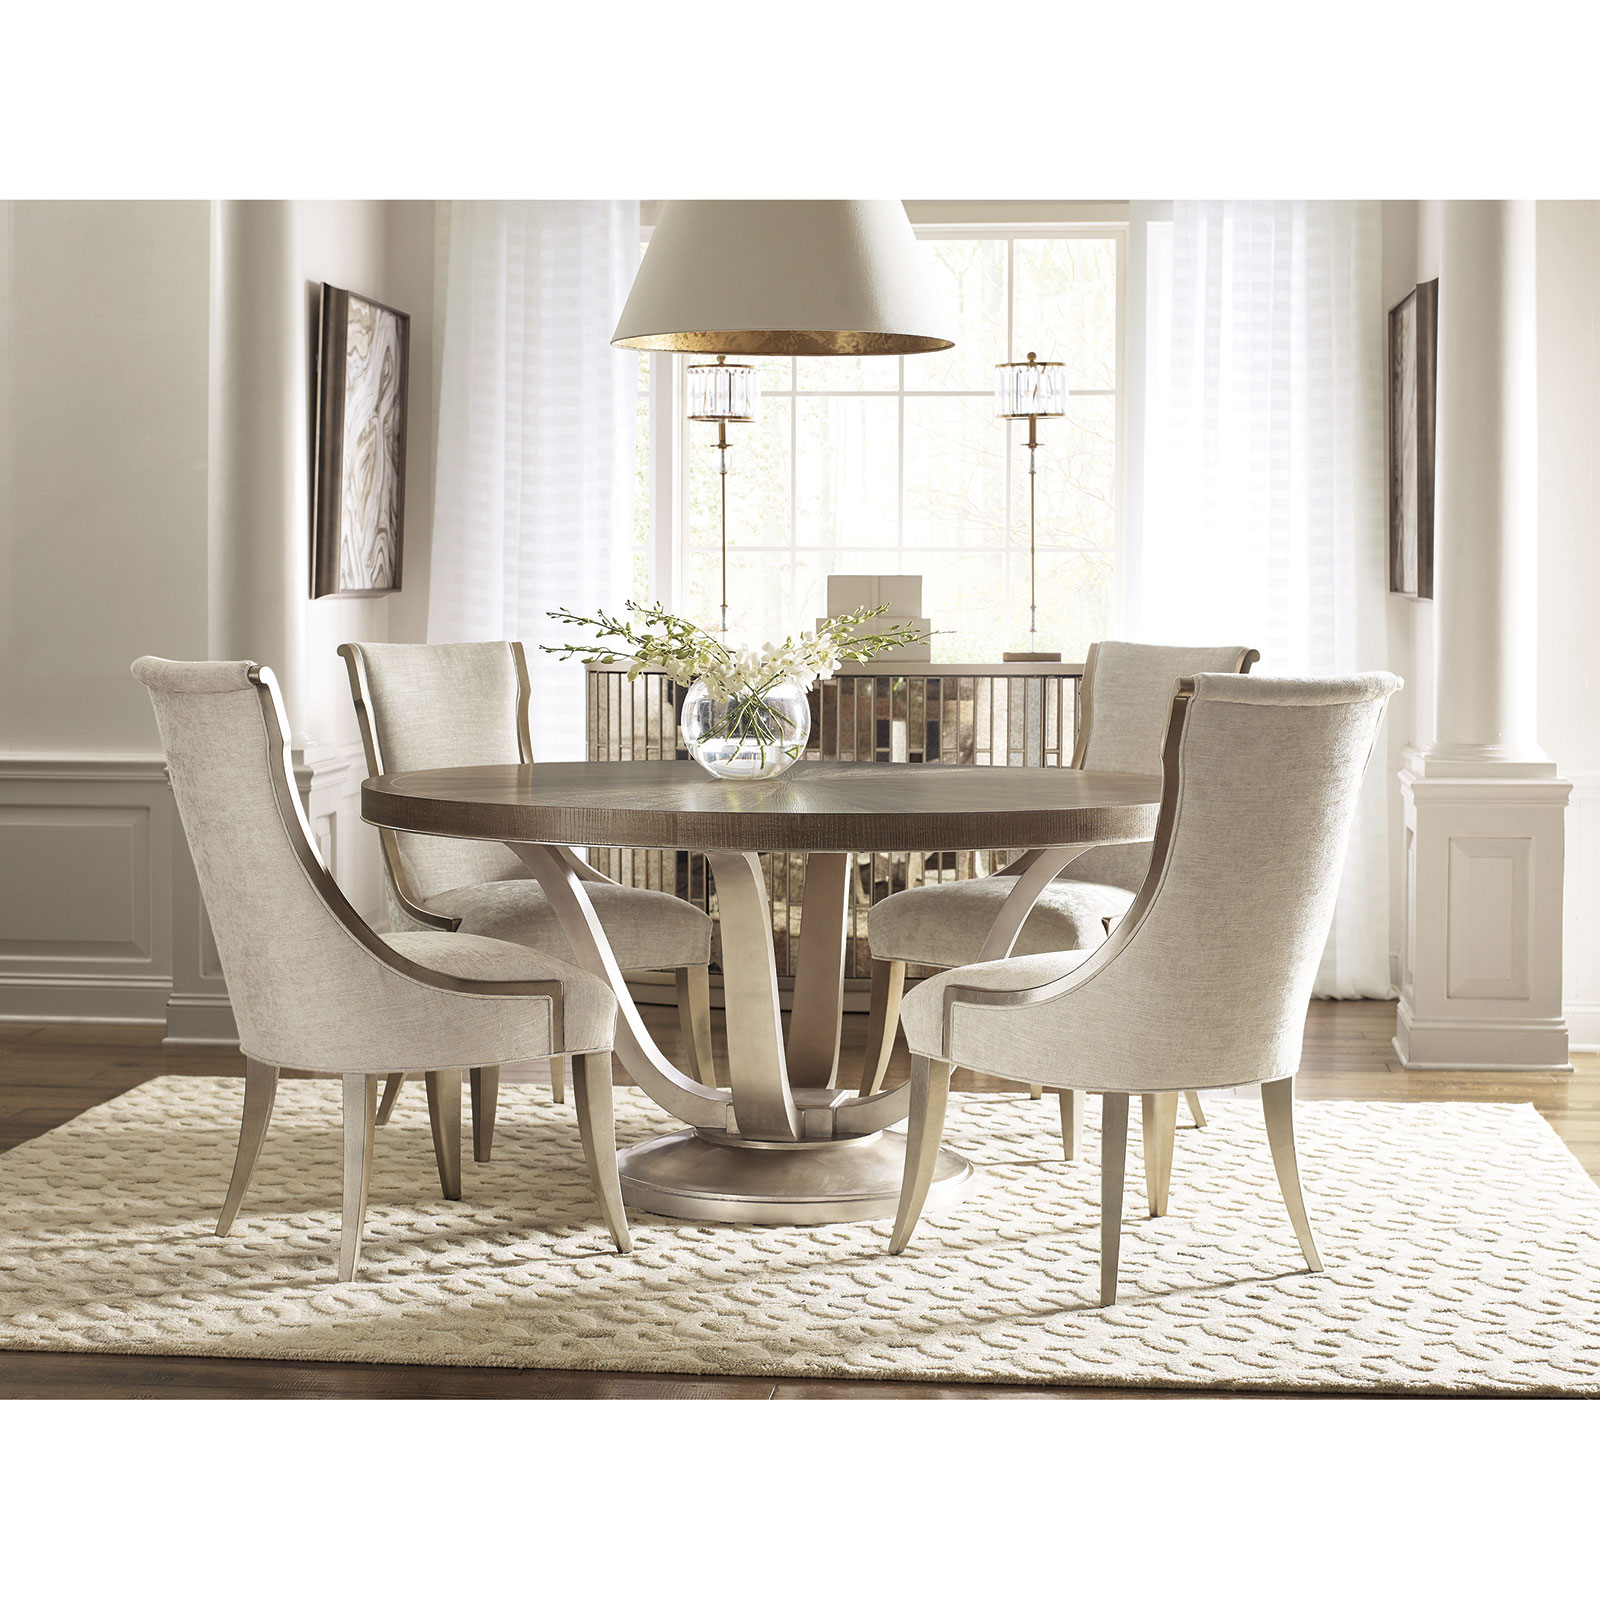 Catelyn French Country Beige Upholstered Dining Side Chair